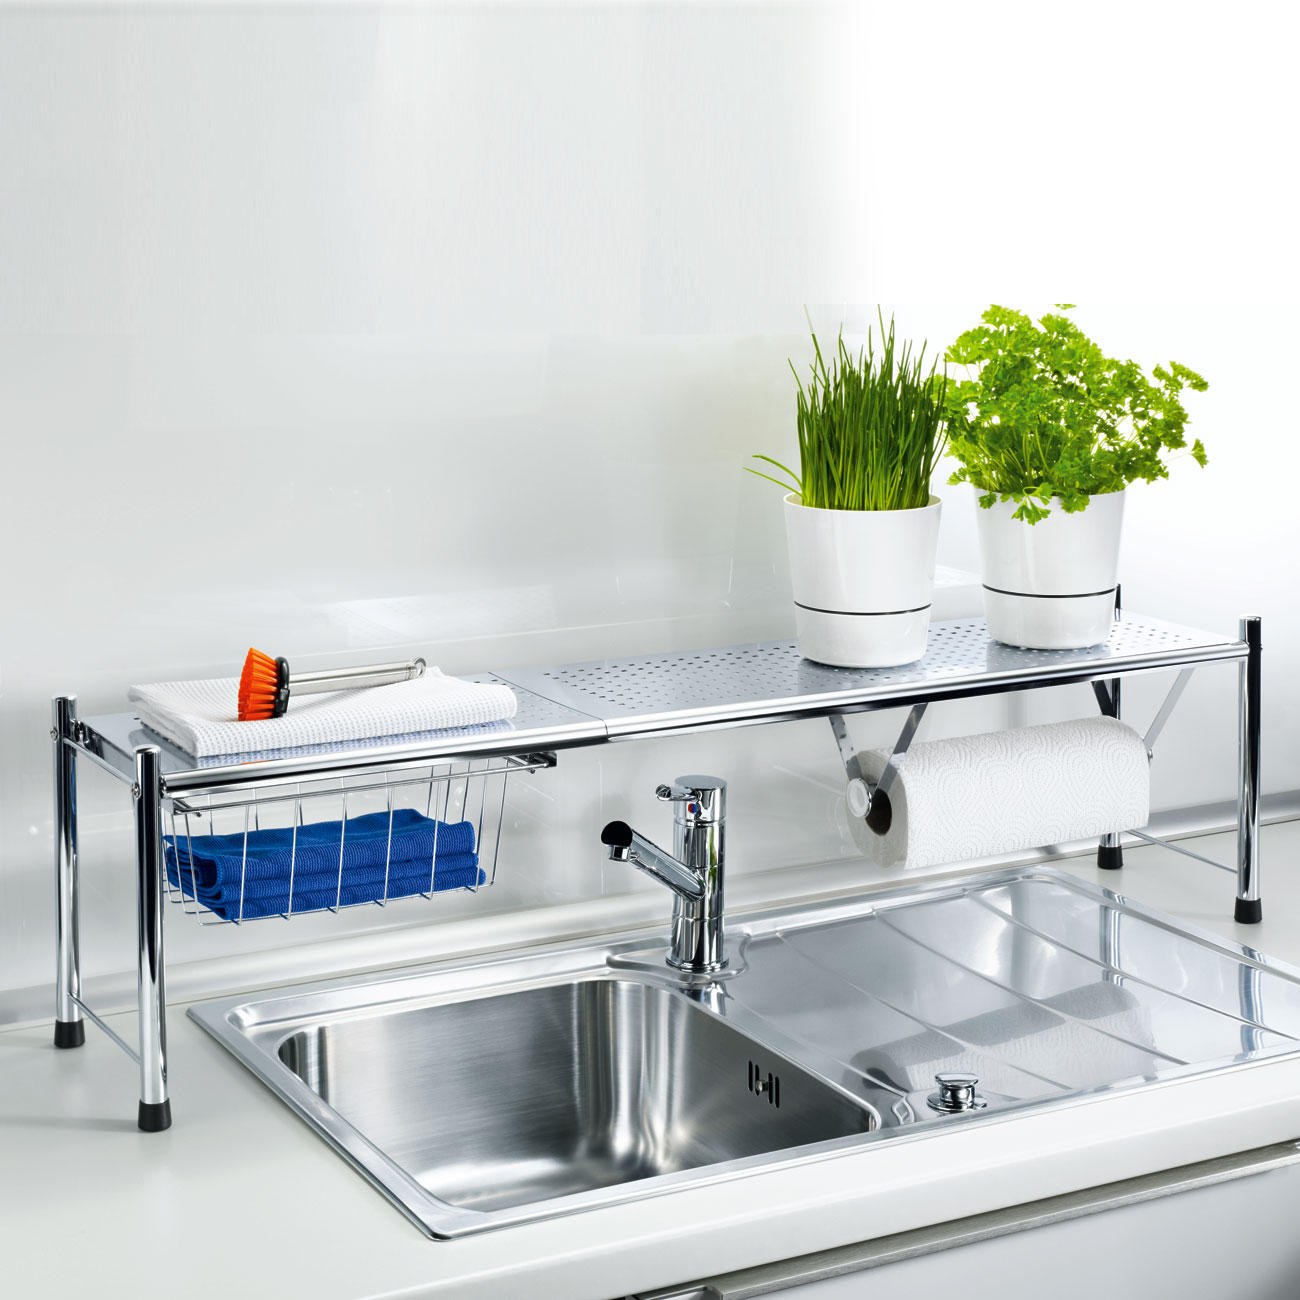 buy extendable sink shelf 3 year product guarantee